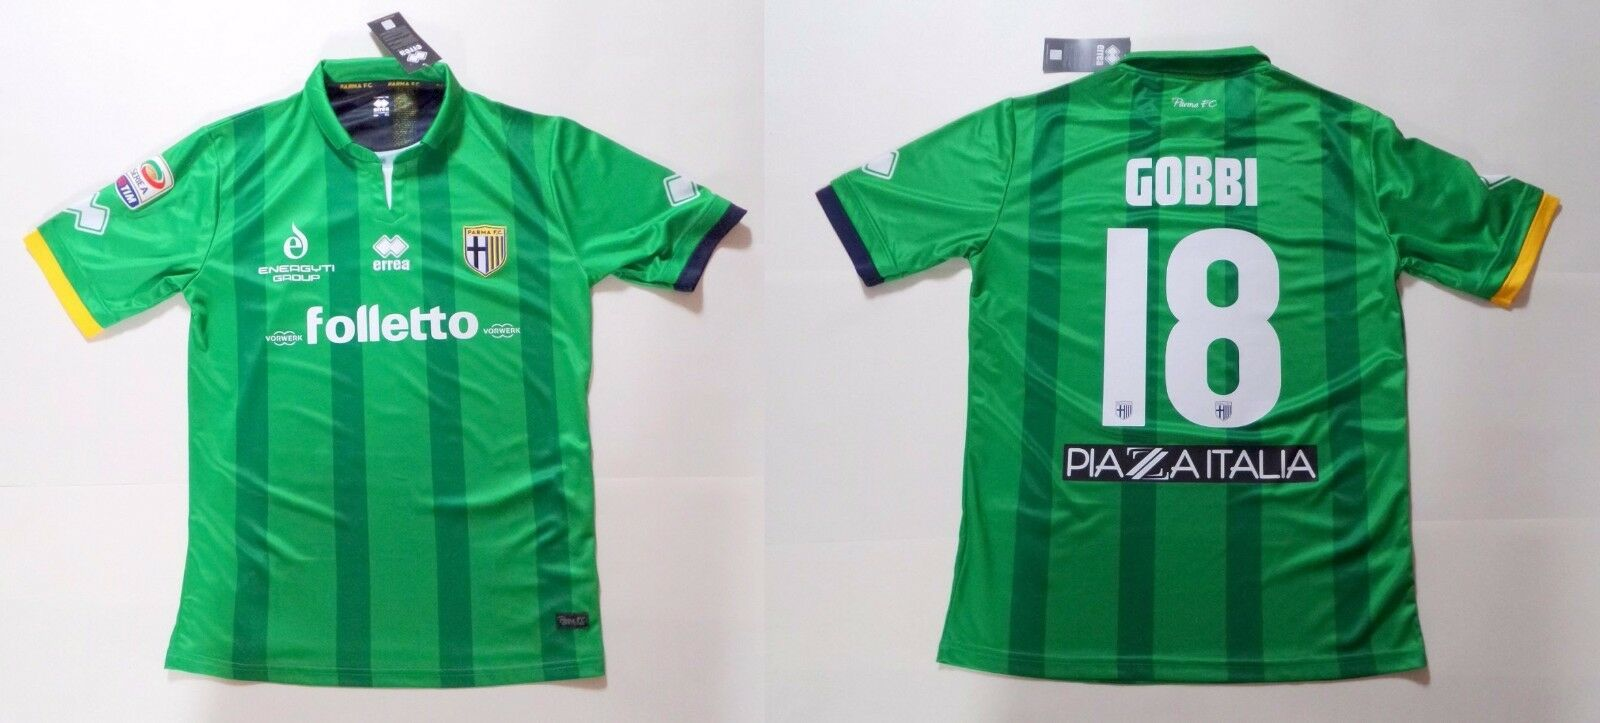 Parma Juventus Errea Gobbi 18 Official Match Jersey T-Shirt Competition Issue